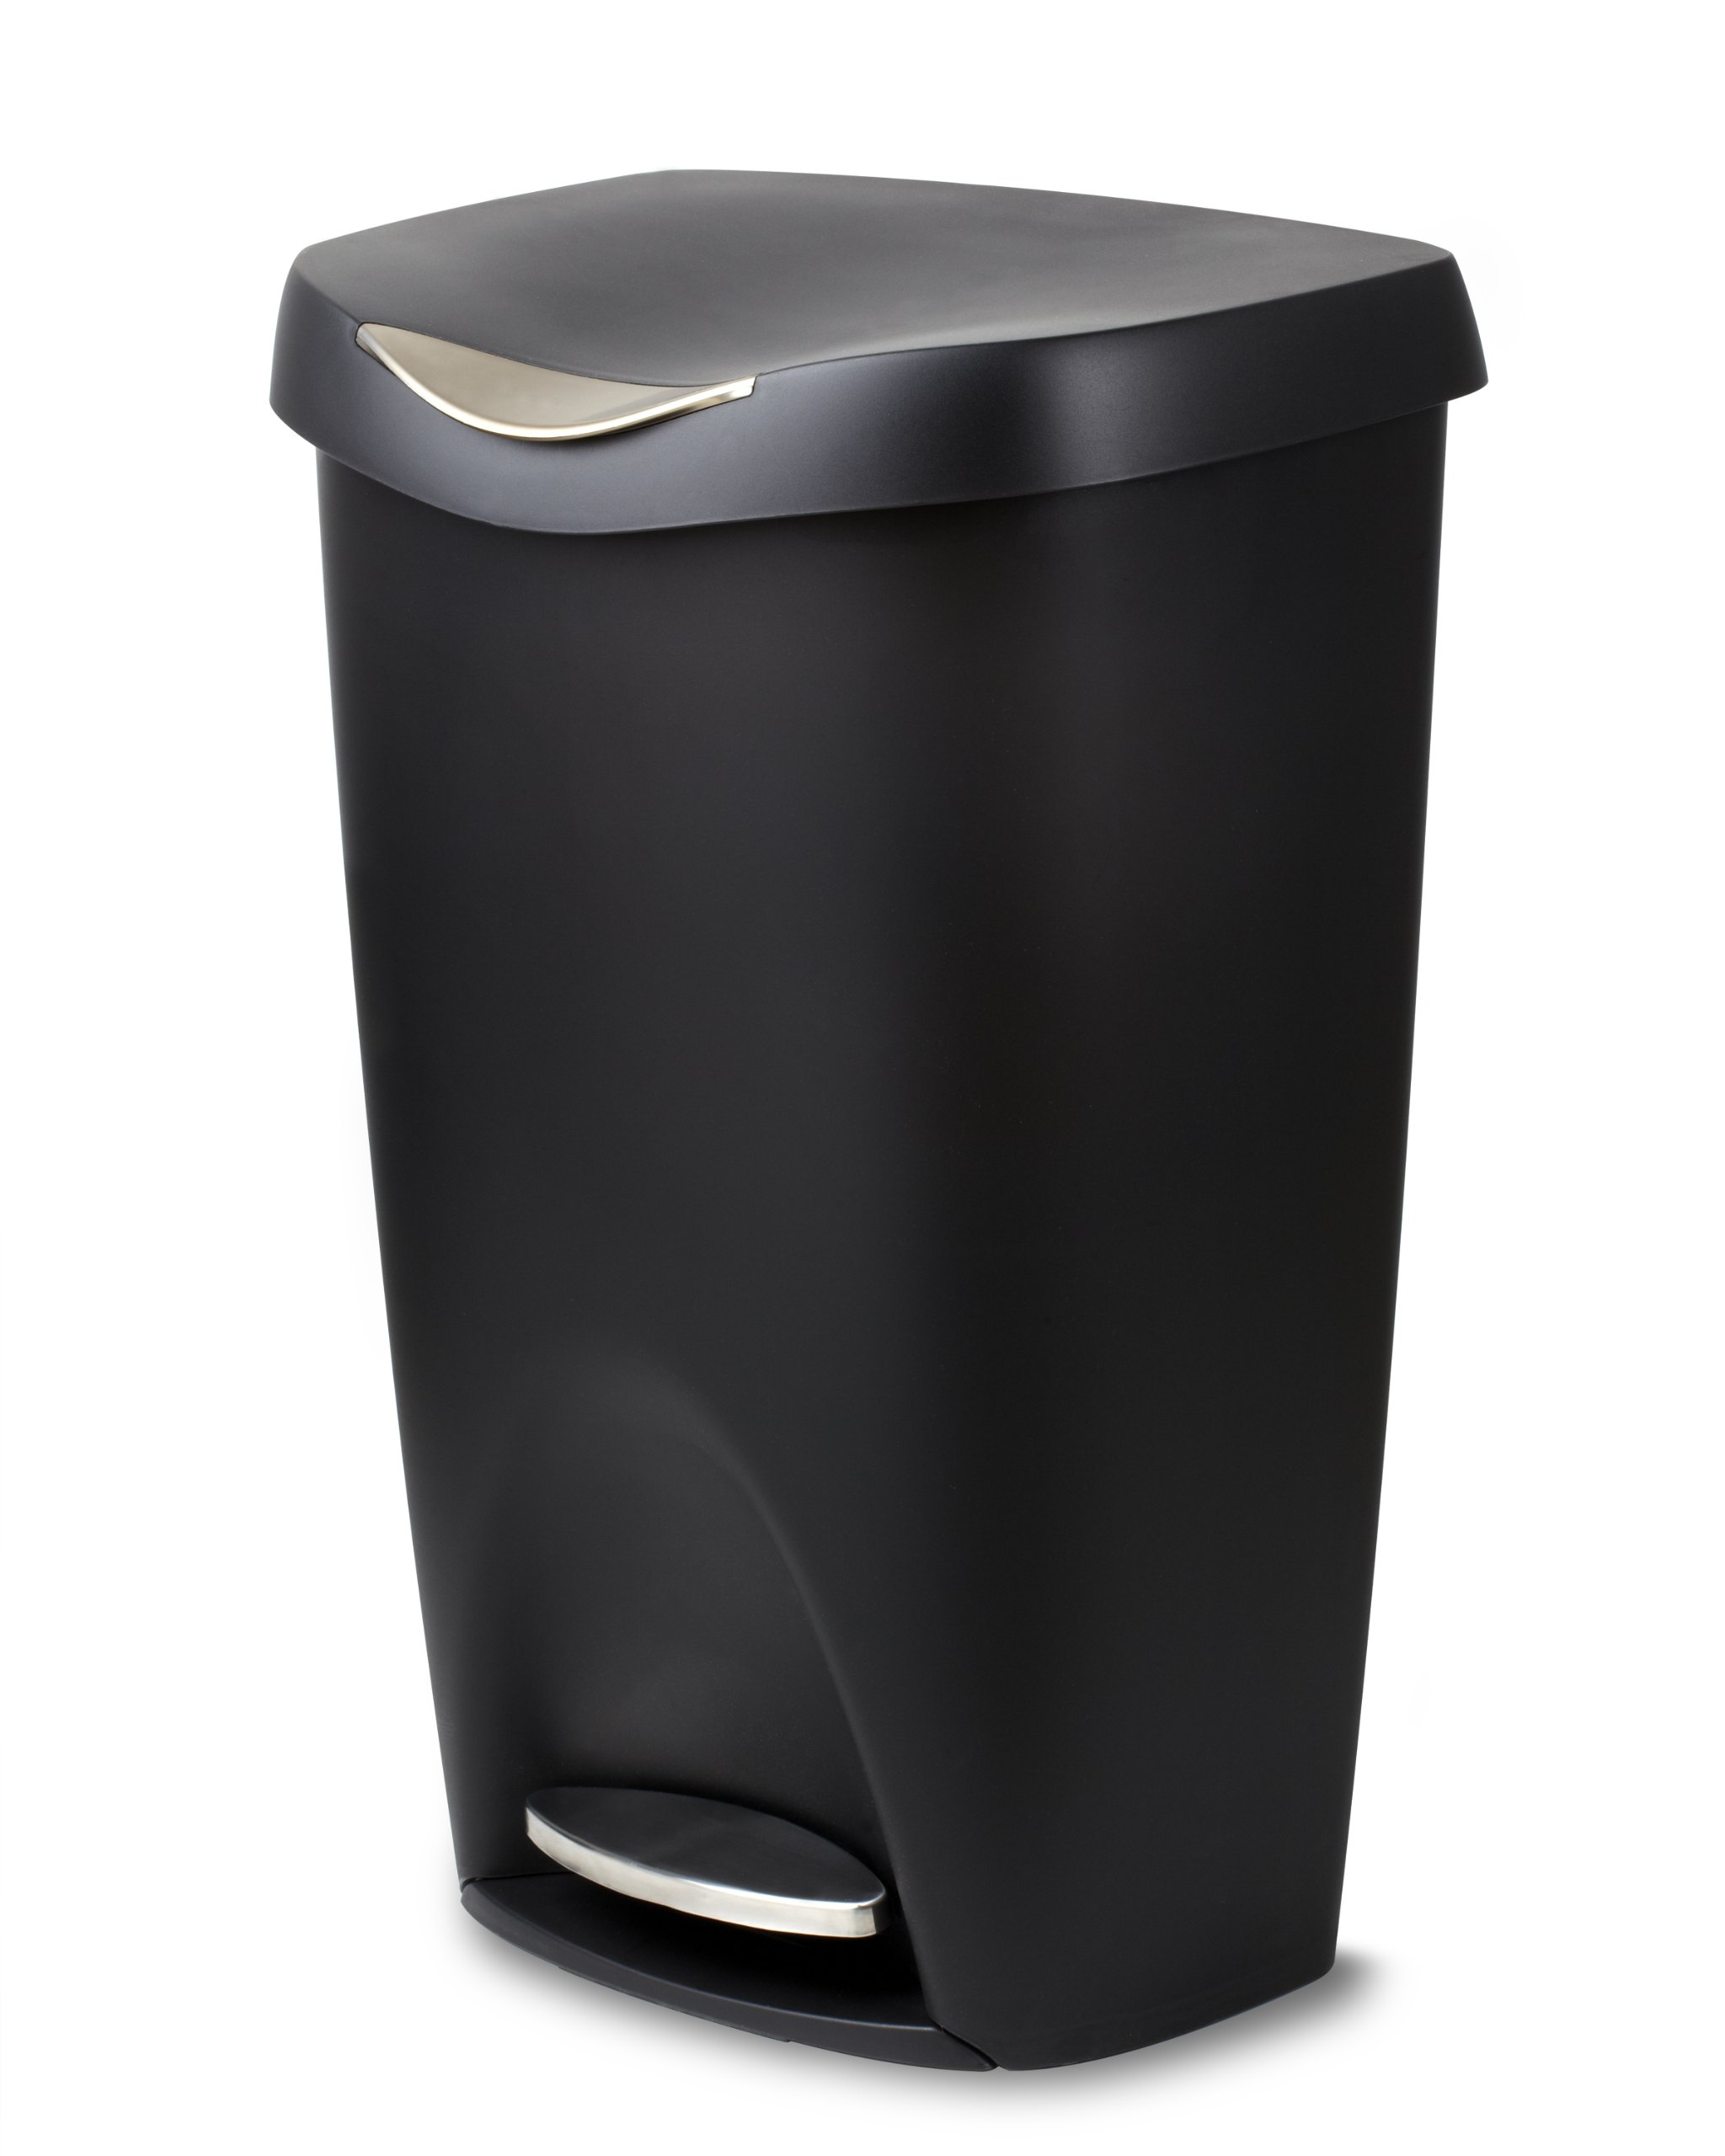 Umbra Brim 13 Gallon Trash Can with Lid - Large Kitchen Garbage Can with Stainless Steel Foot Pedal, Stylish and Durable, Black